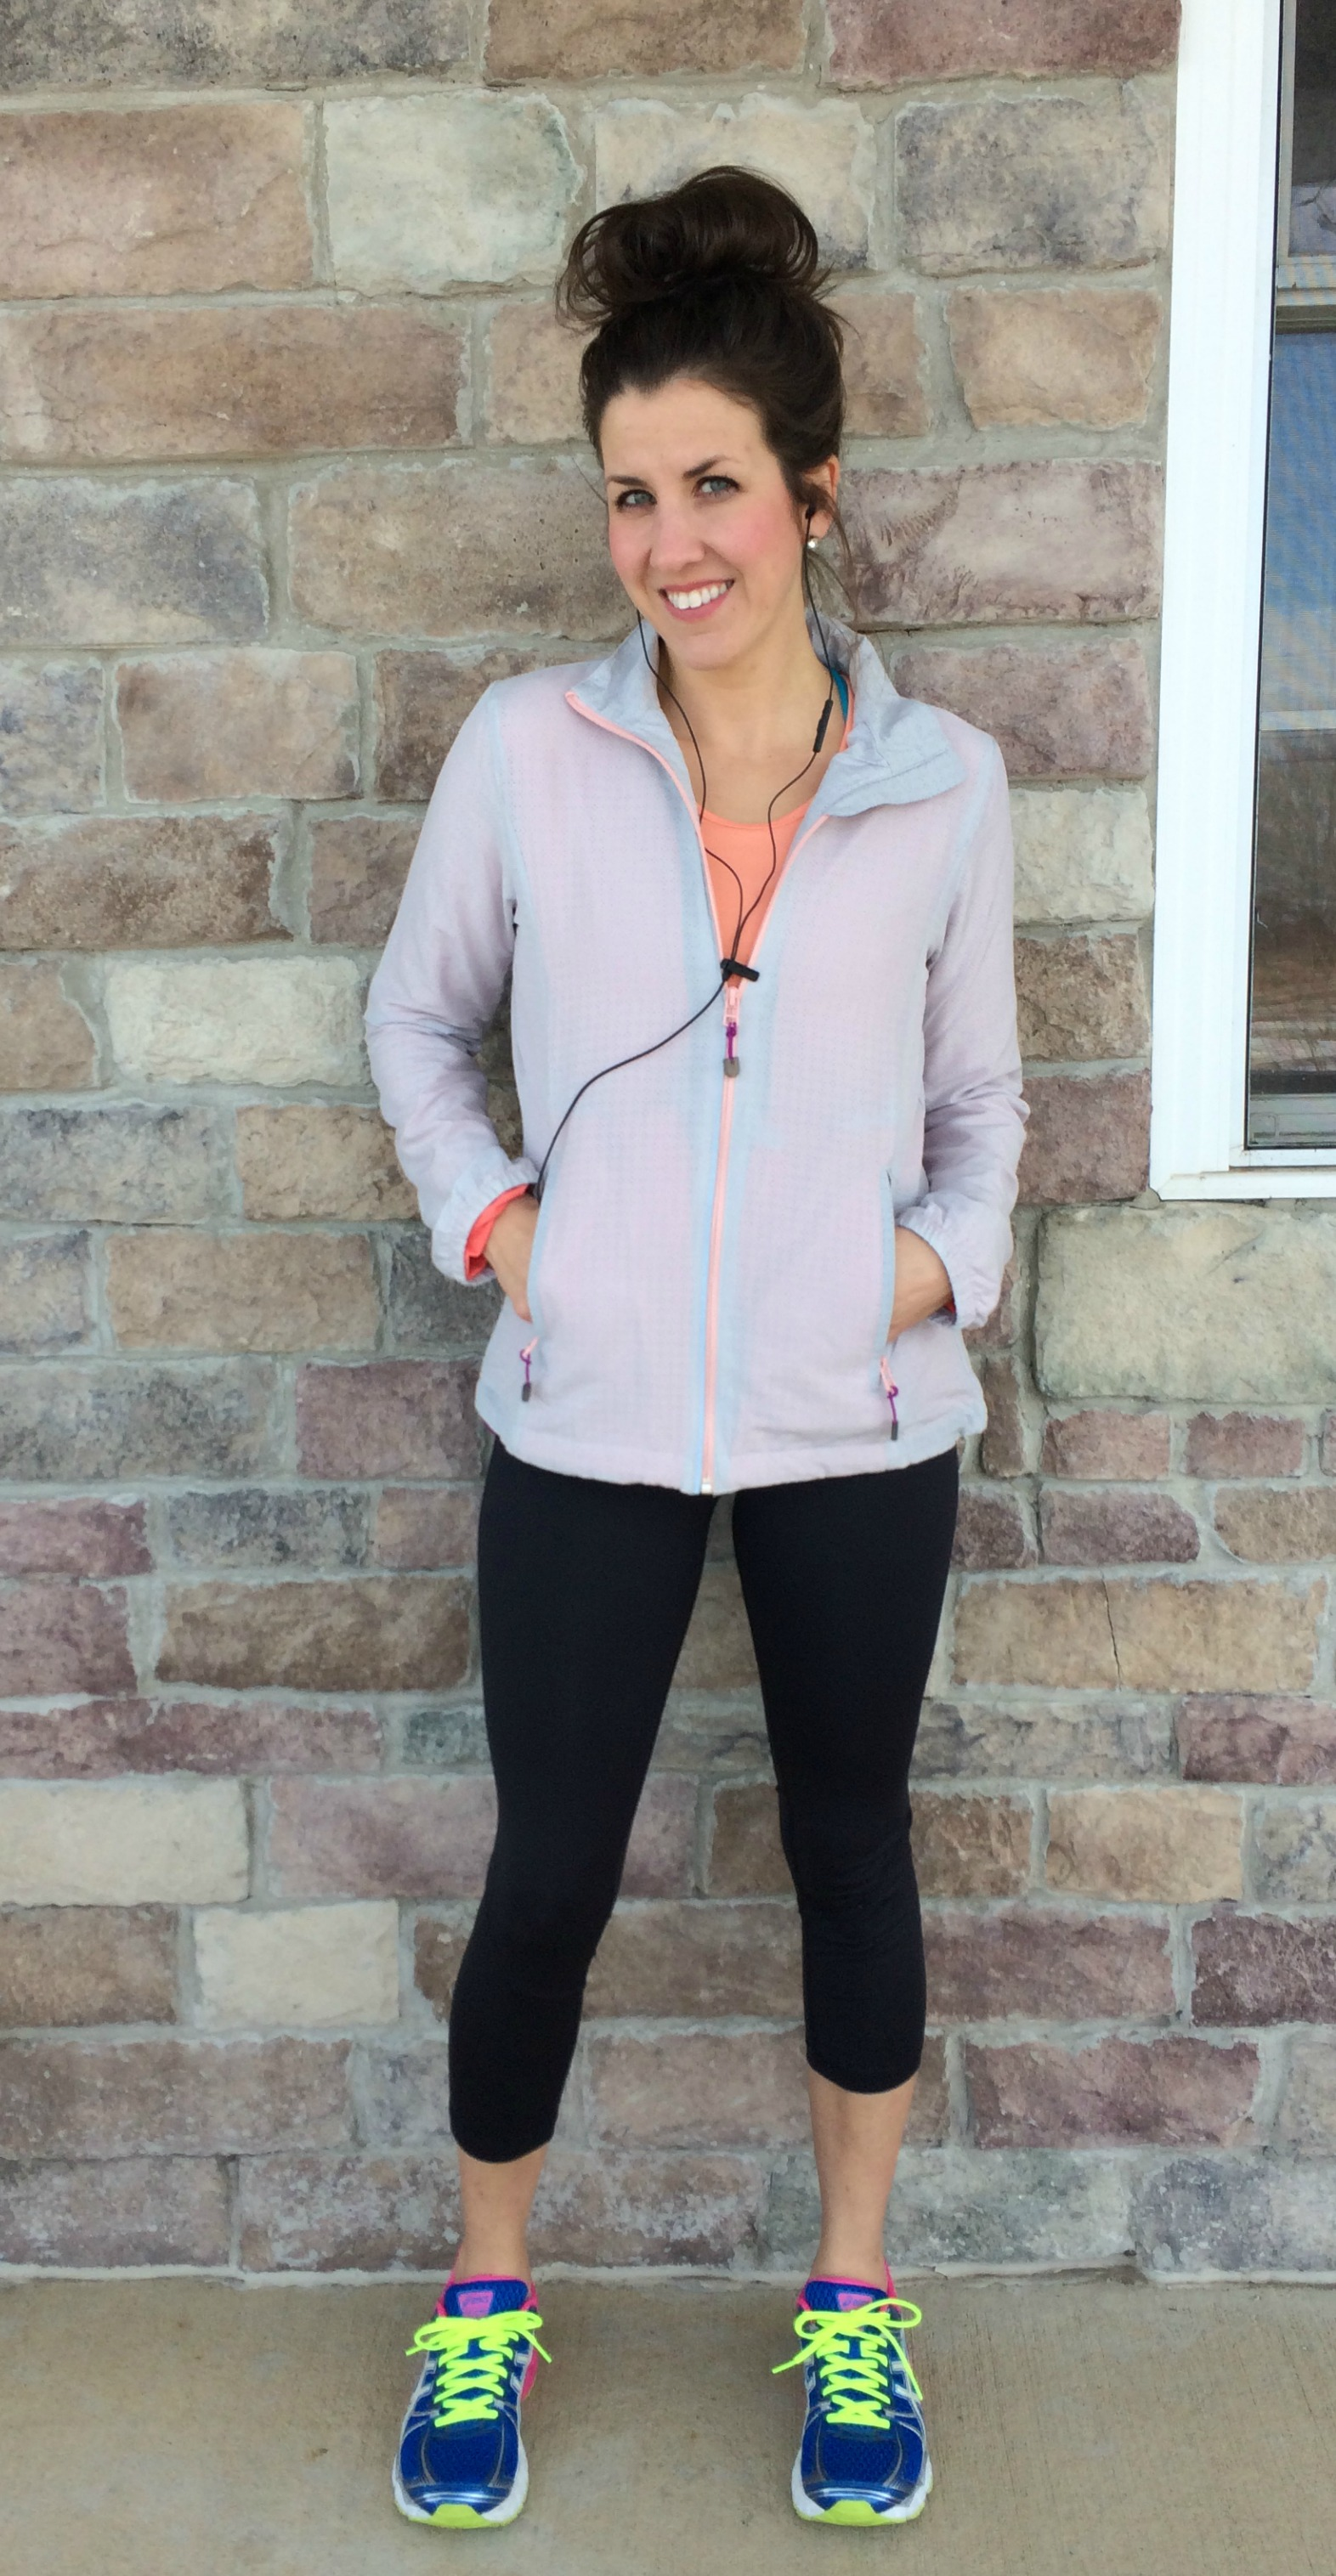 Lands' End Activewear Collection #Fit&Fabulous - momma in flip flops